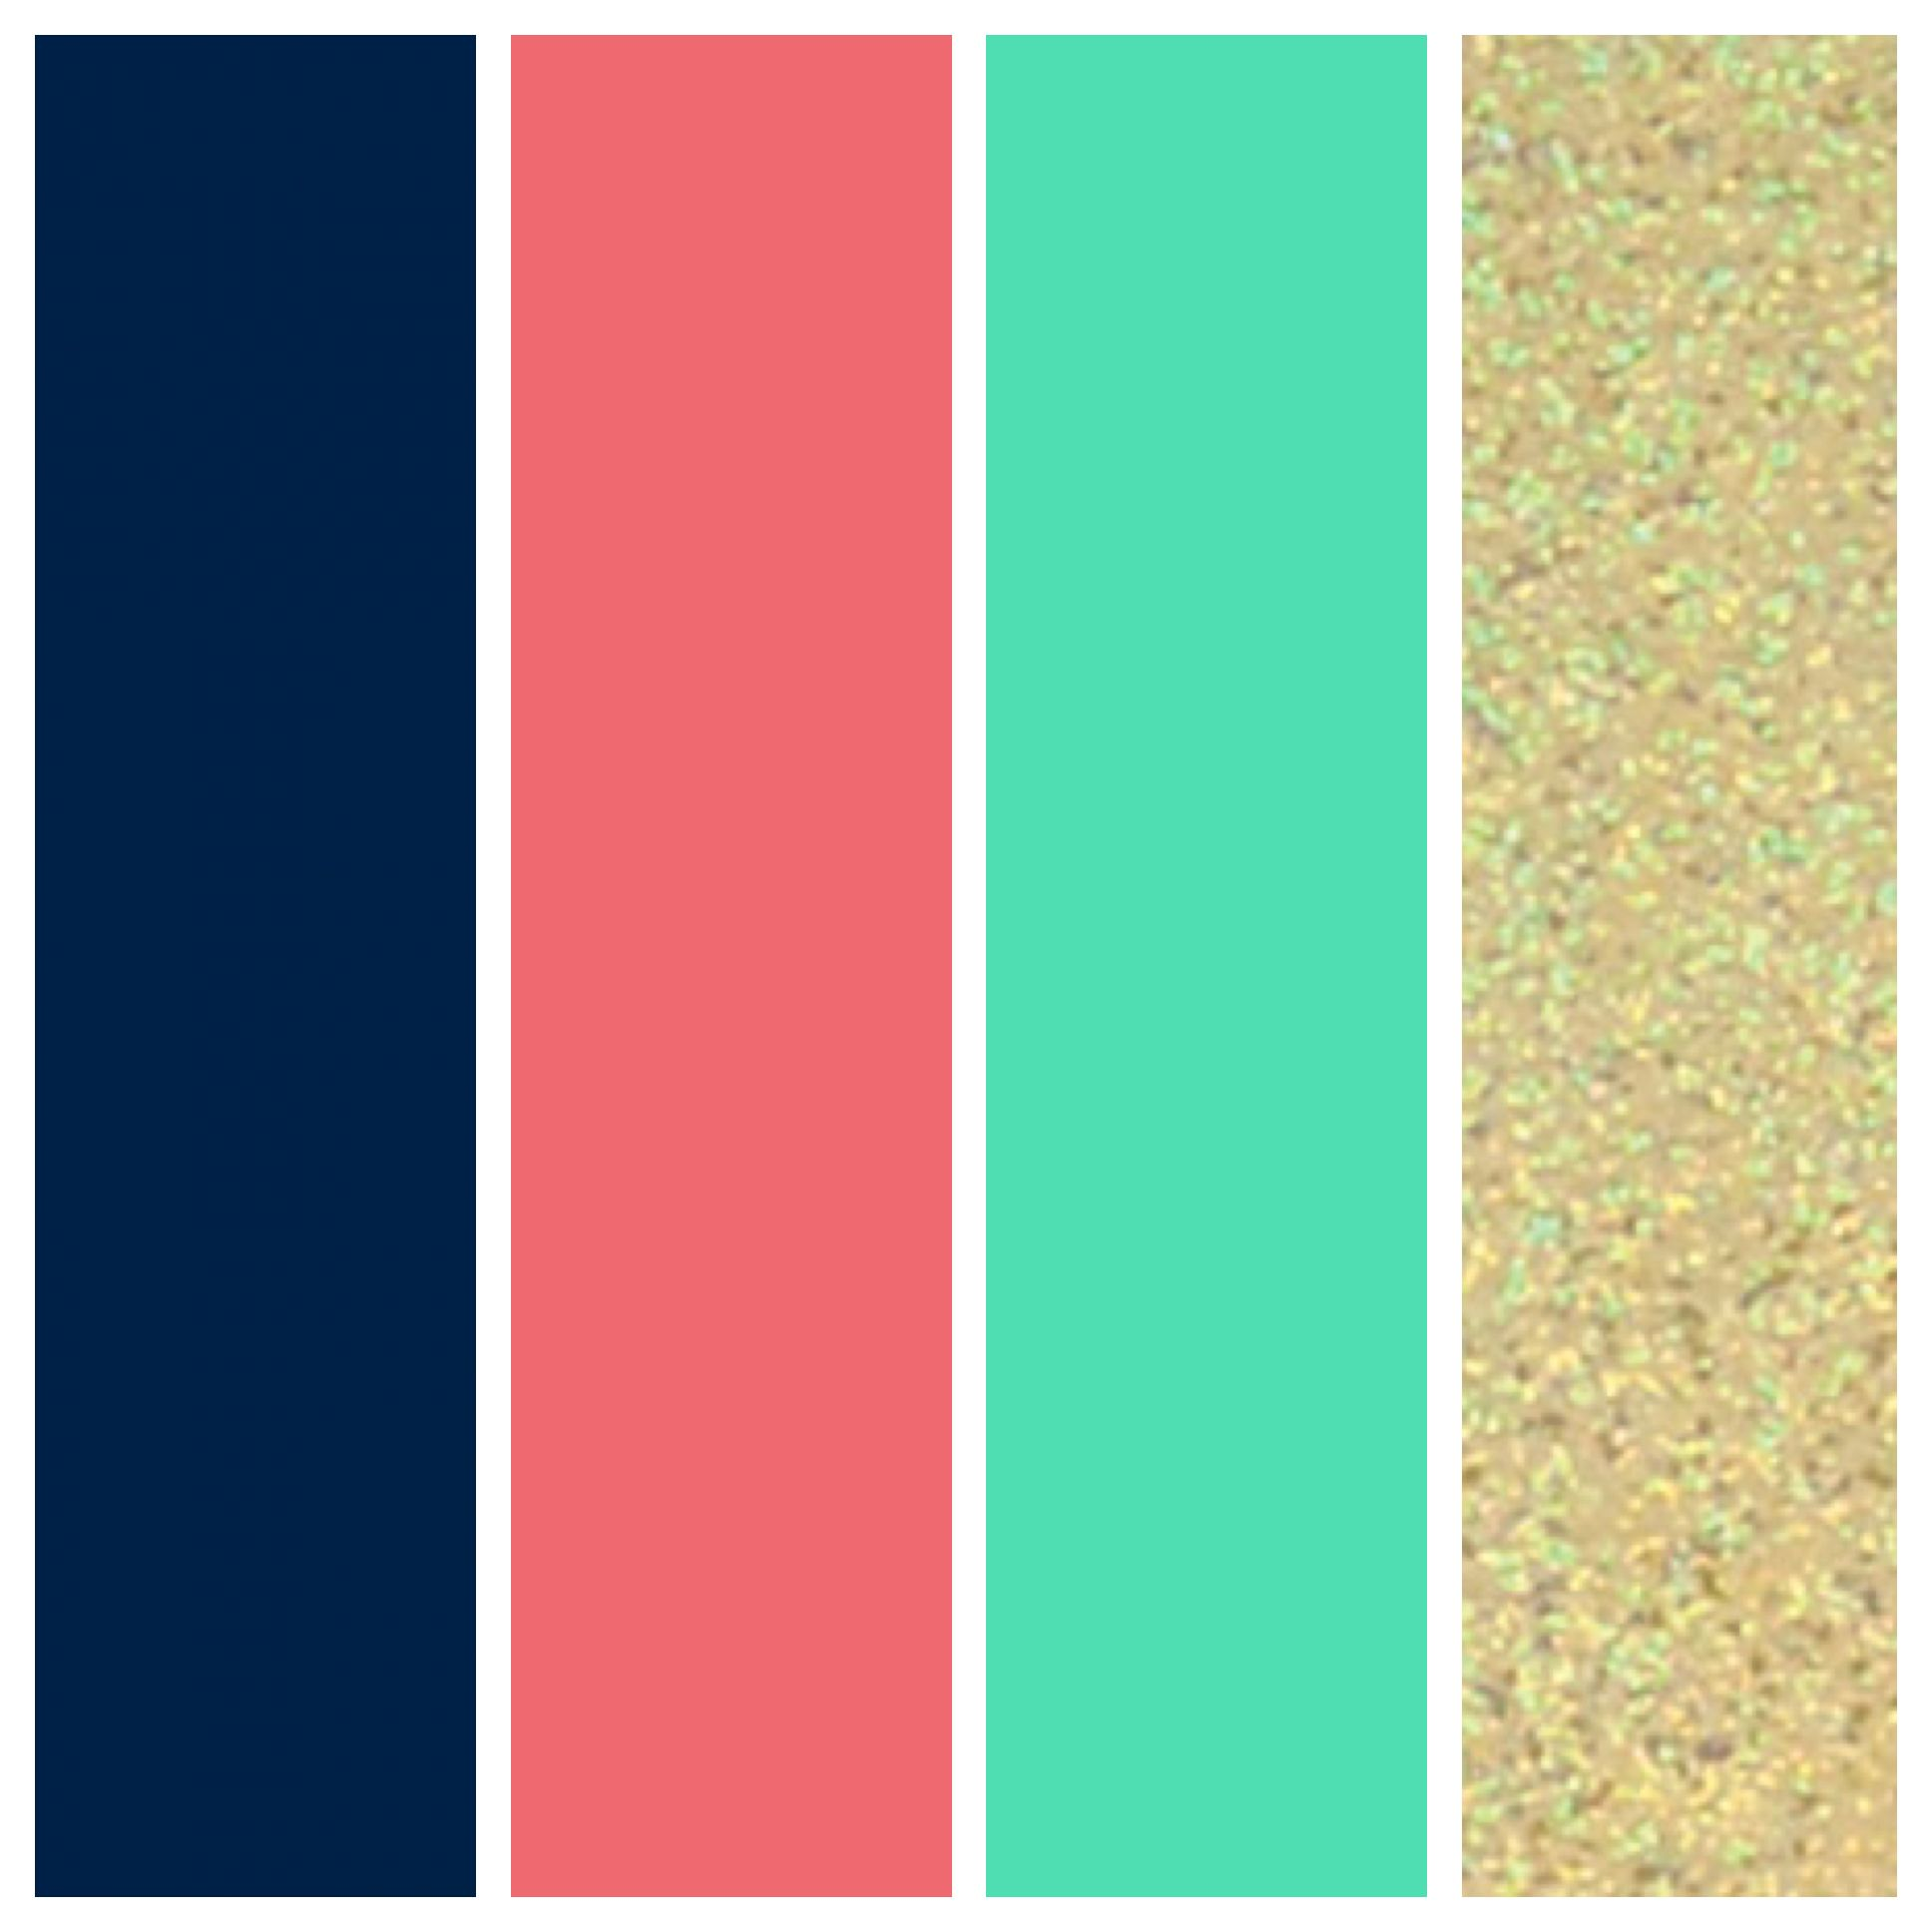 Bedroom color schemes gold - Wedding Color Palette Navy Coral Seafoam And Gold